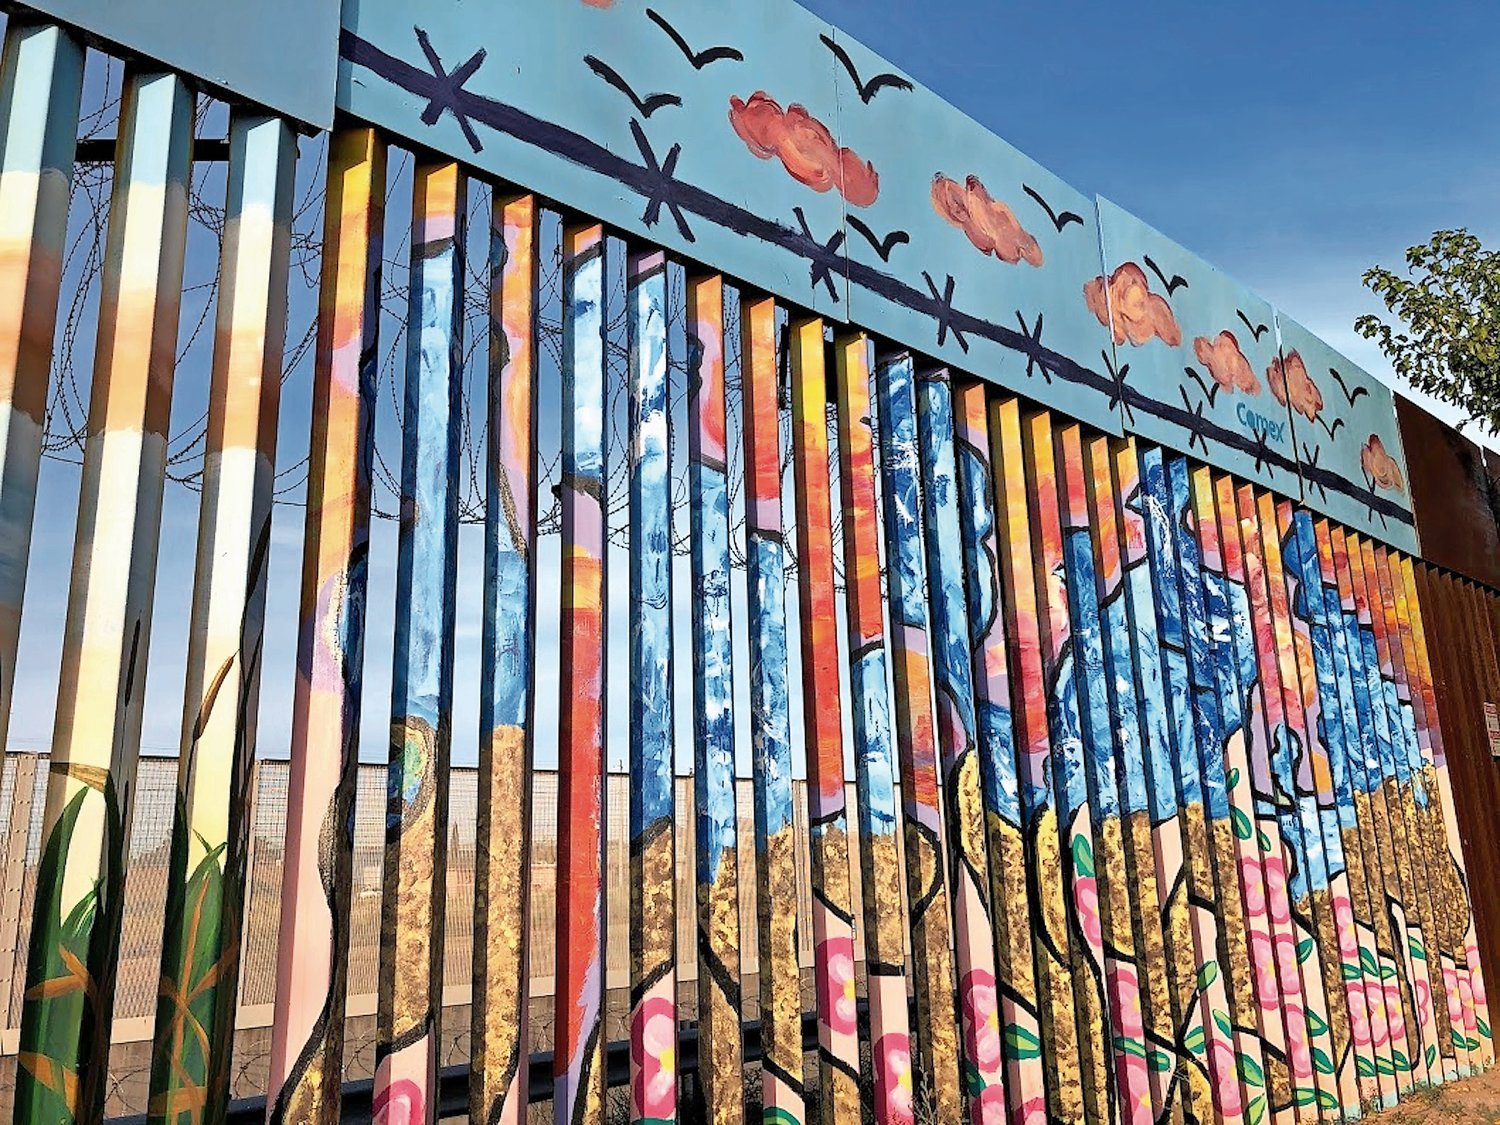 In Agua Prieta, on the Mexican side of the border, many portions of the border wall are painted in an array of colorful murals.